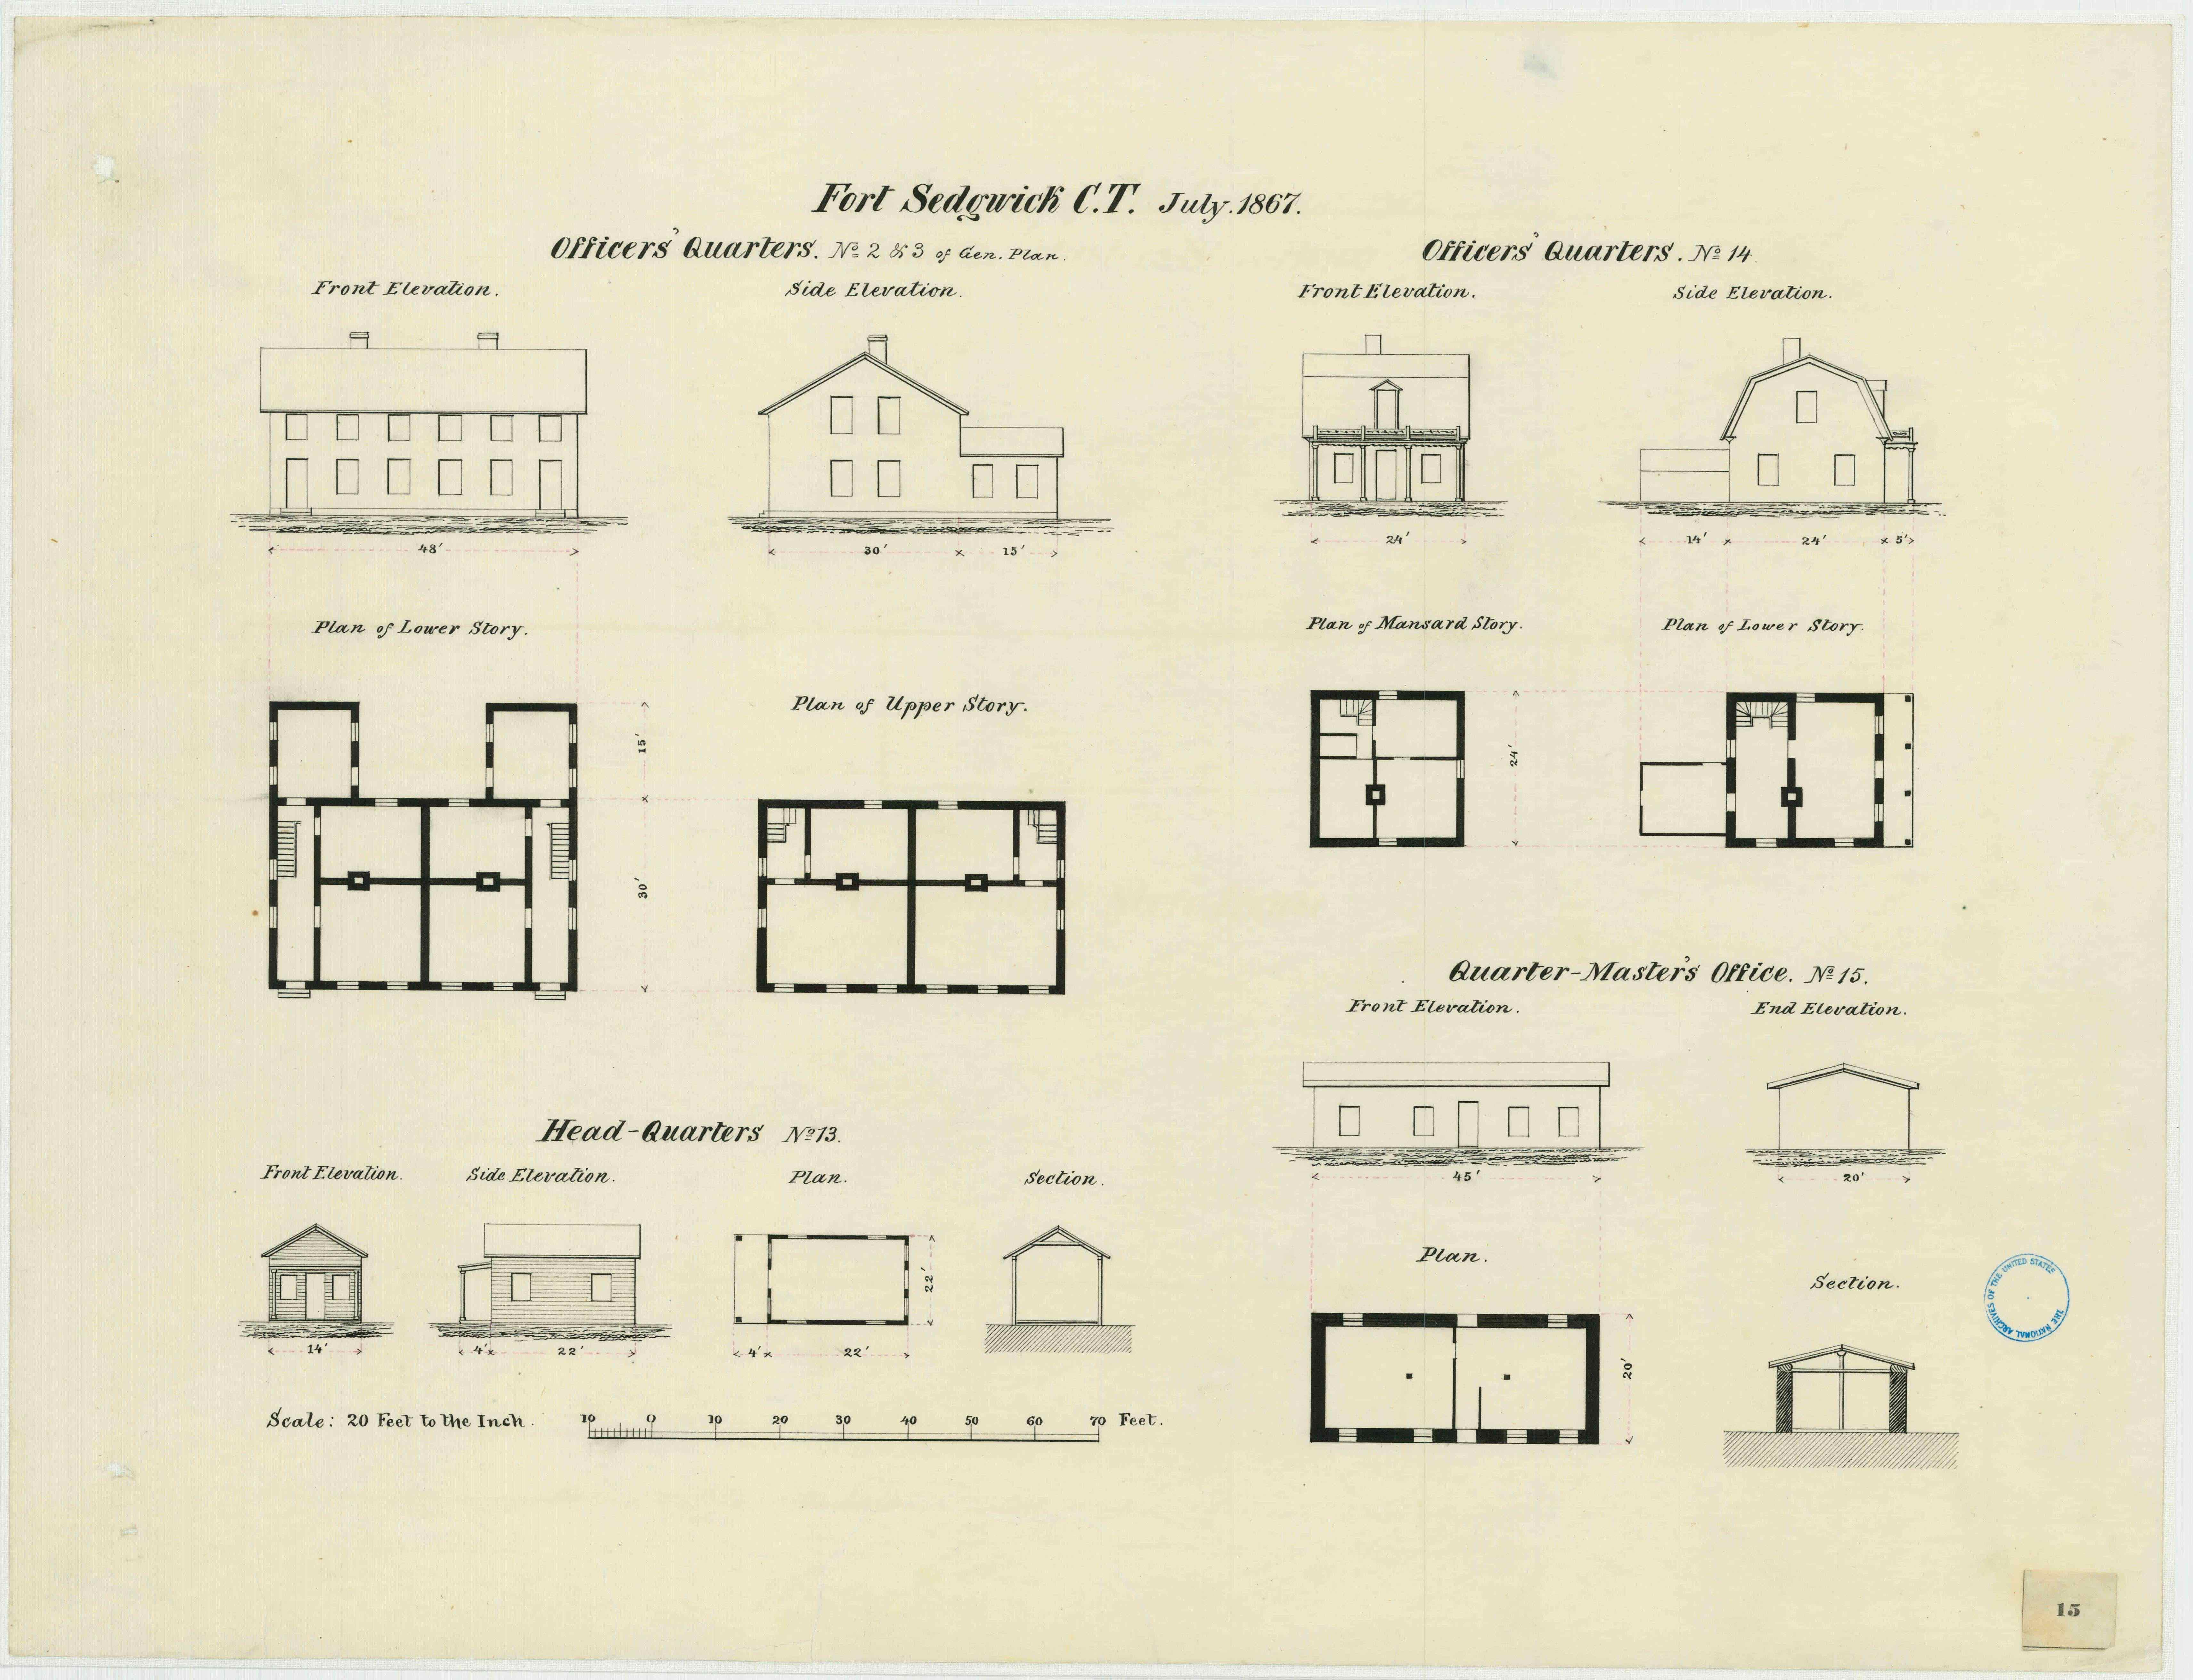 July 1867 military architectural plans for the officers' quarters, headquarters, and quartermaster's office at Fort Sedgwick (Courtesy of the Map Division, Archives II, NARA)